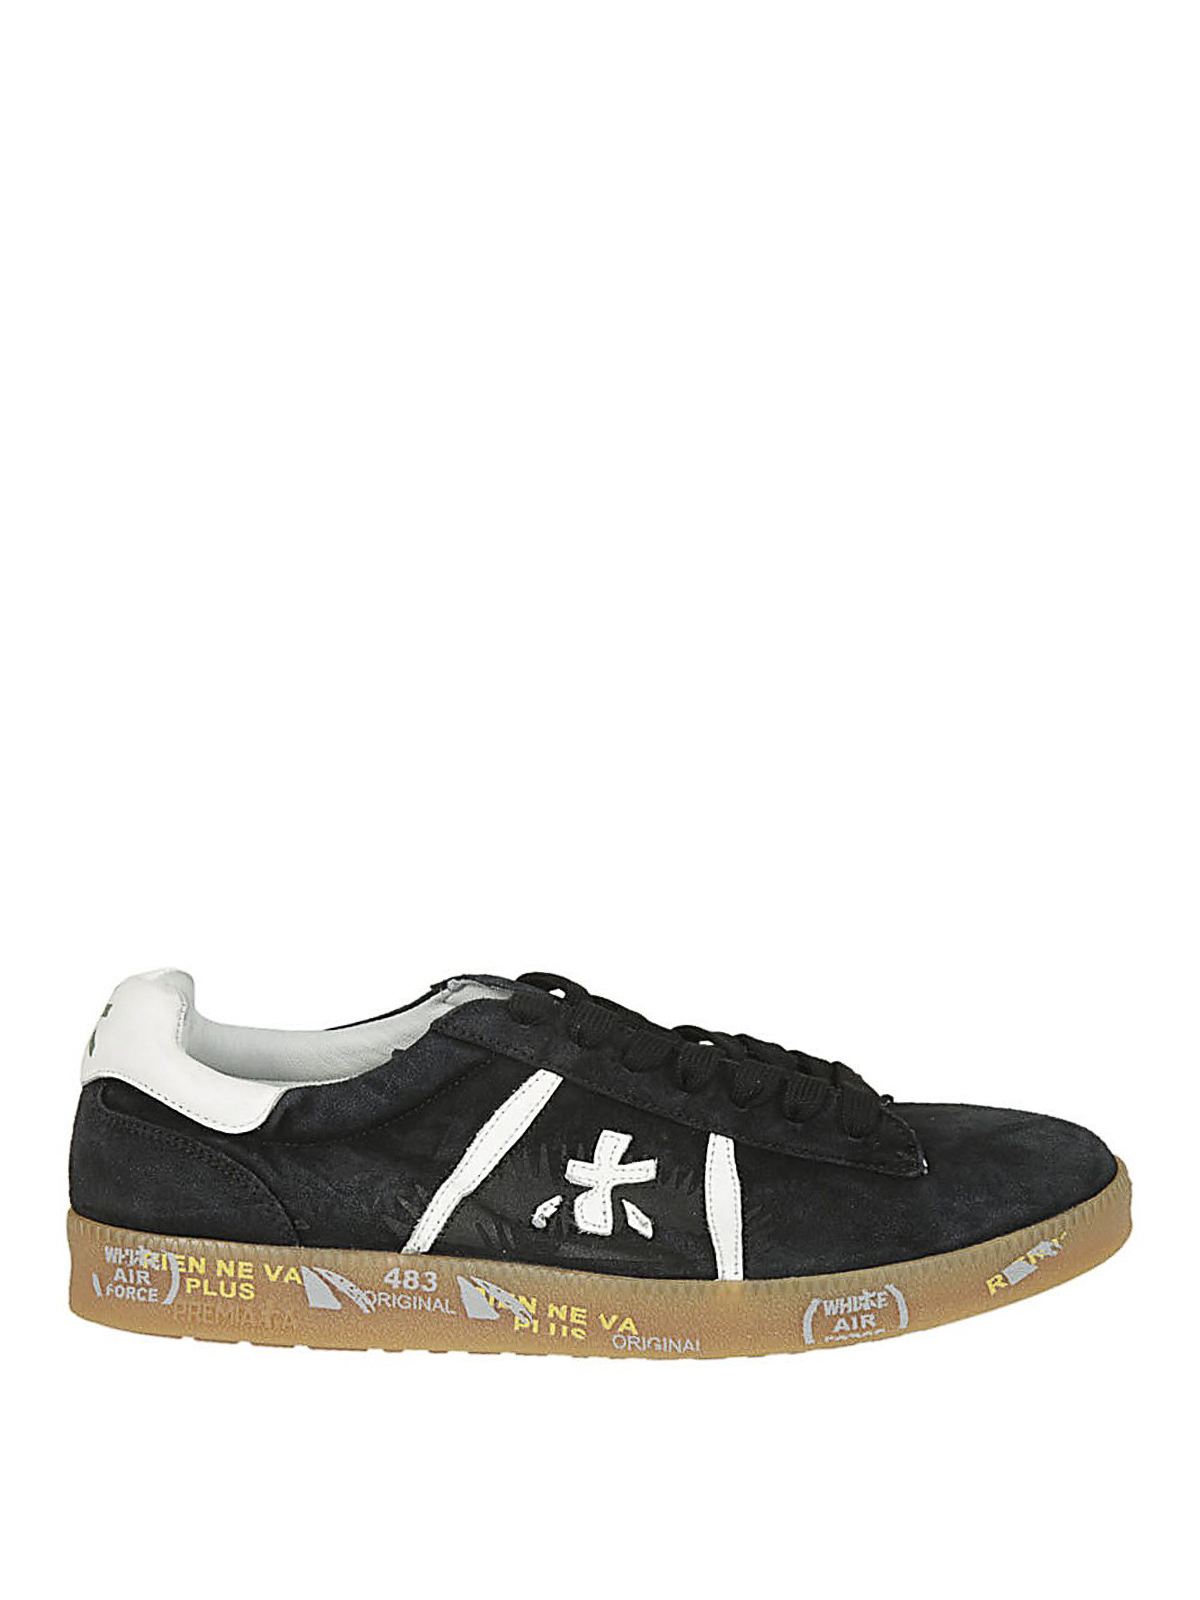 32613f2c646ad premiata-trainers-andy-black-suede-sneakers-00000133448f00s001.jpg